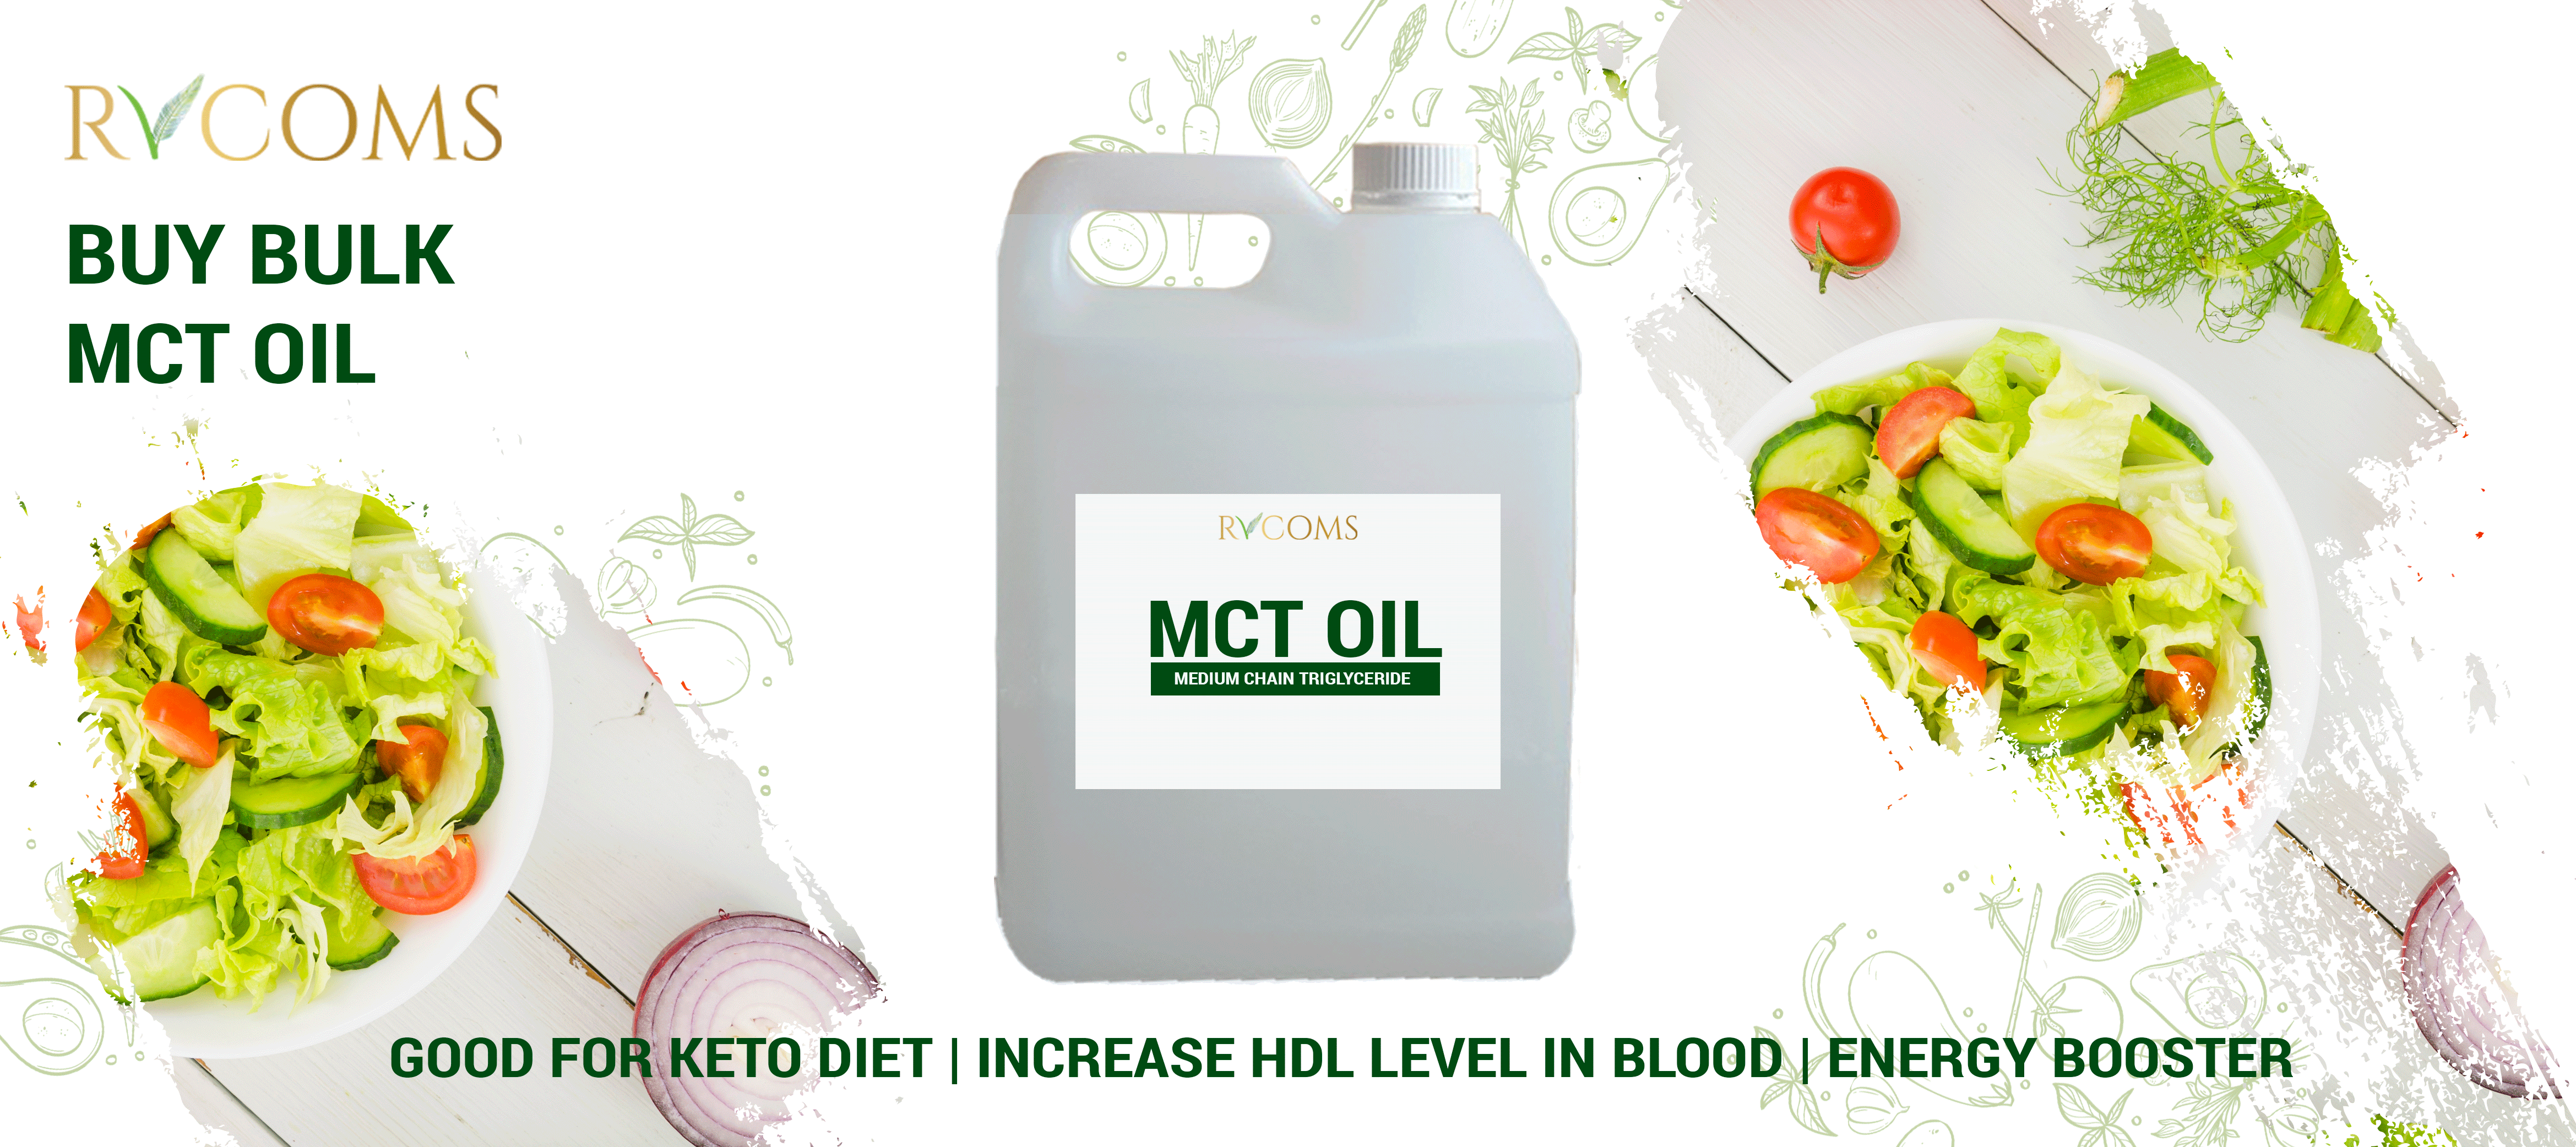 How Much MCT Oil Should I Take?